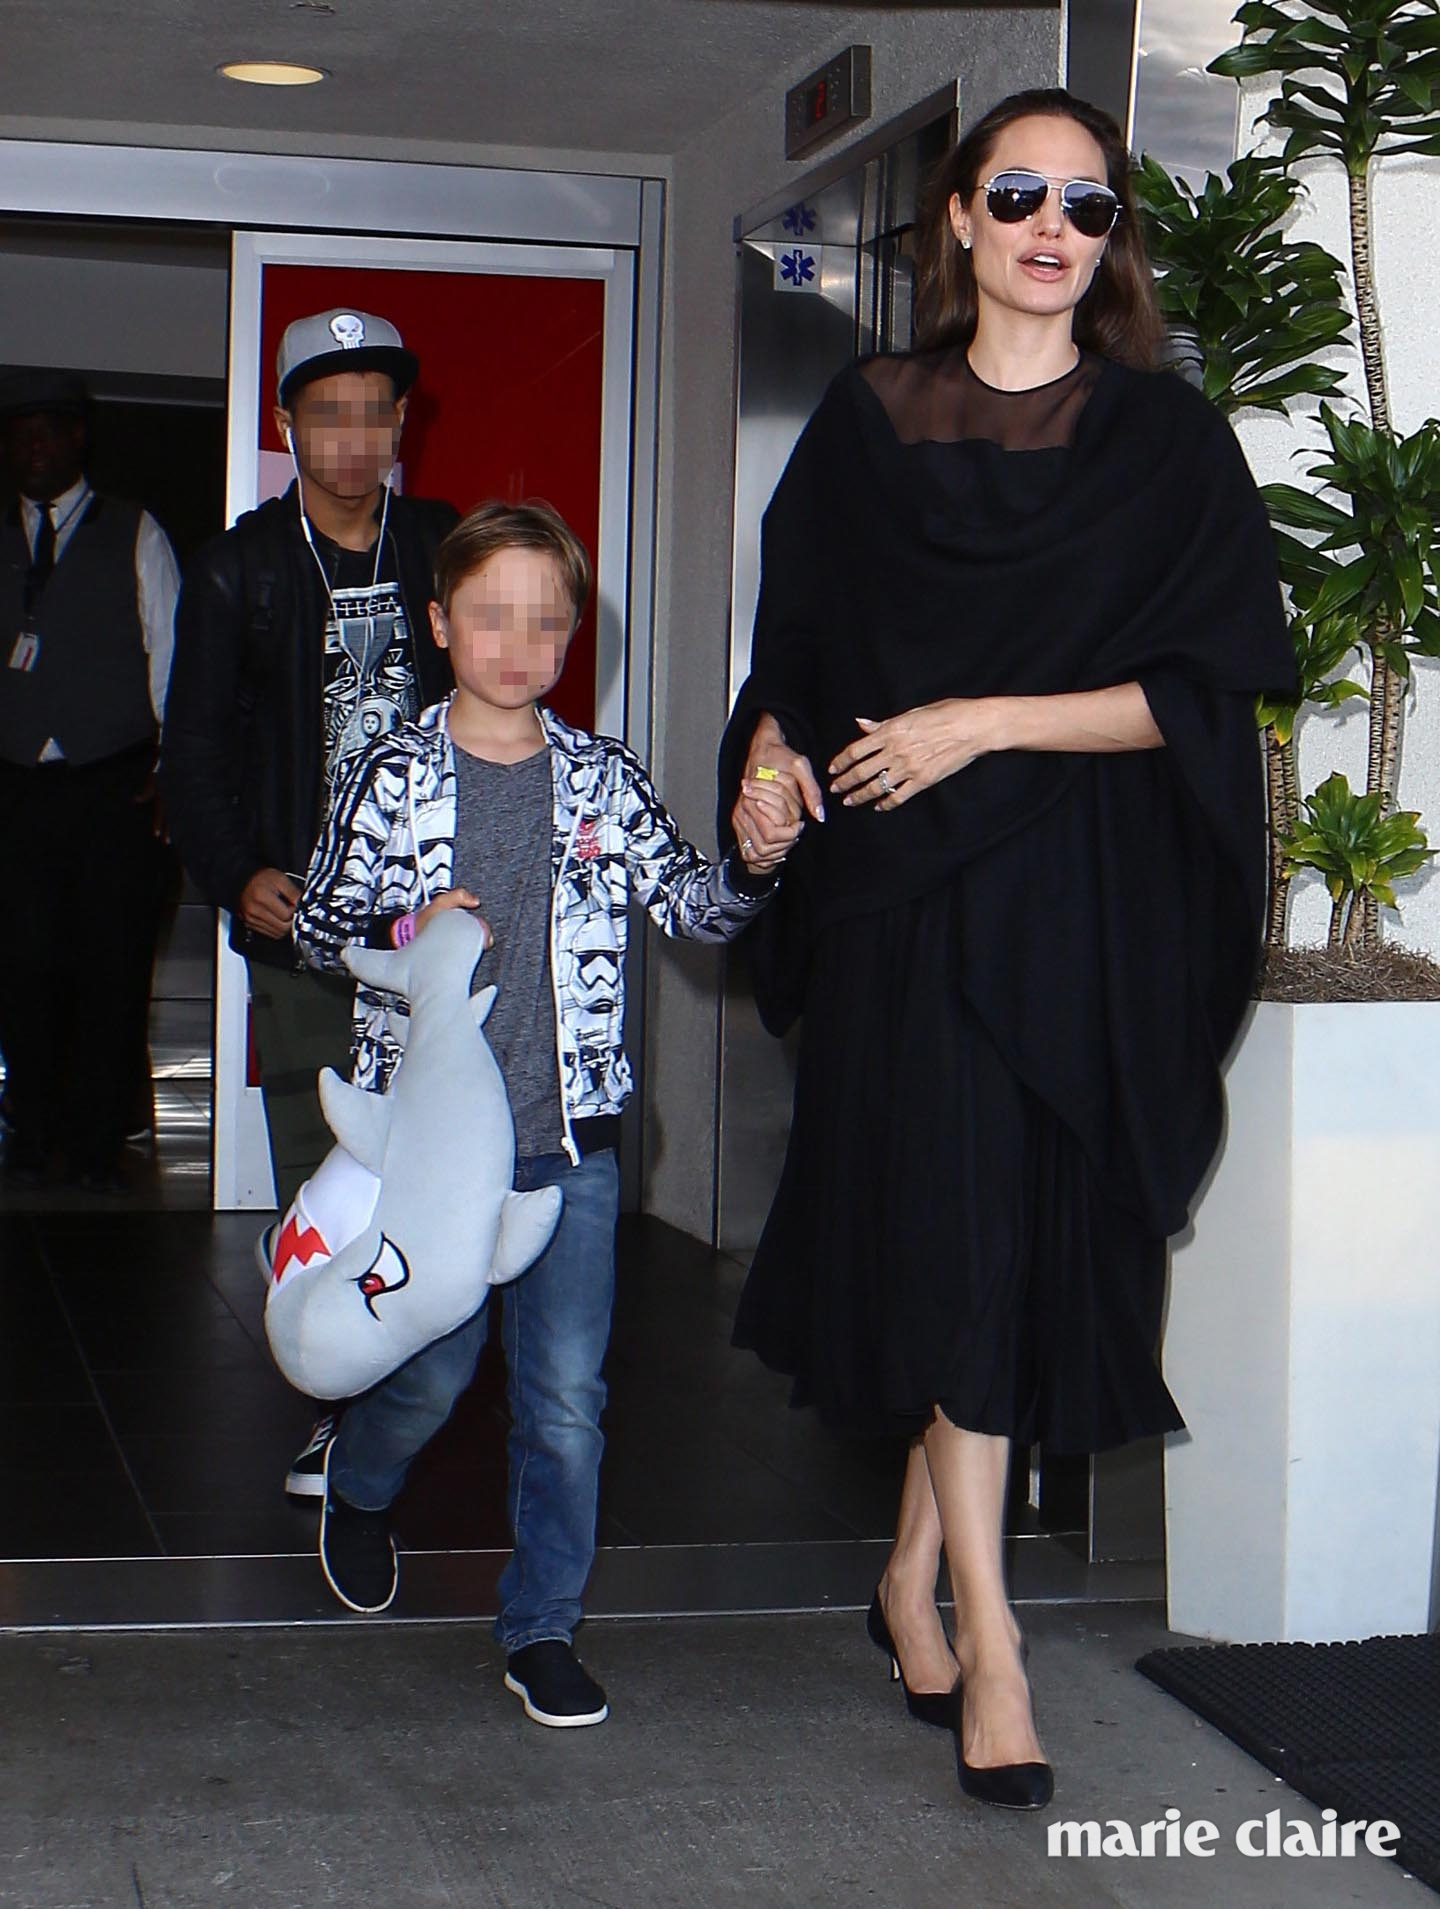 Angelina Jolie arrives at Los Angeles International Airport with kids Maddox and Knox. Featuring: Angelina Jolie, Maddox Chivan Jolie-Pitt, Knox Leon Jolie-Pitt Where: Los Angeles, California, United States When: 22 Jun 2016 Credit: WENN.com